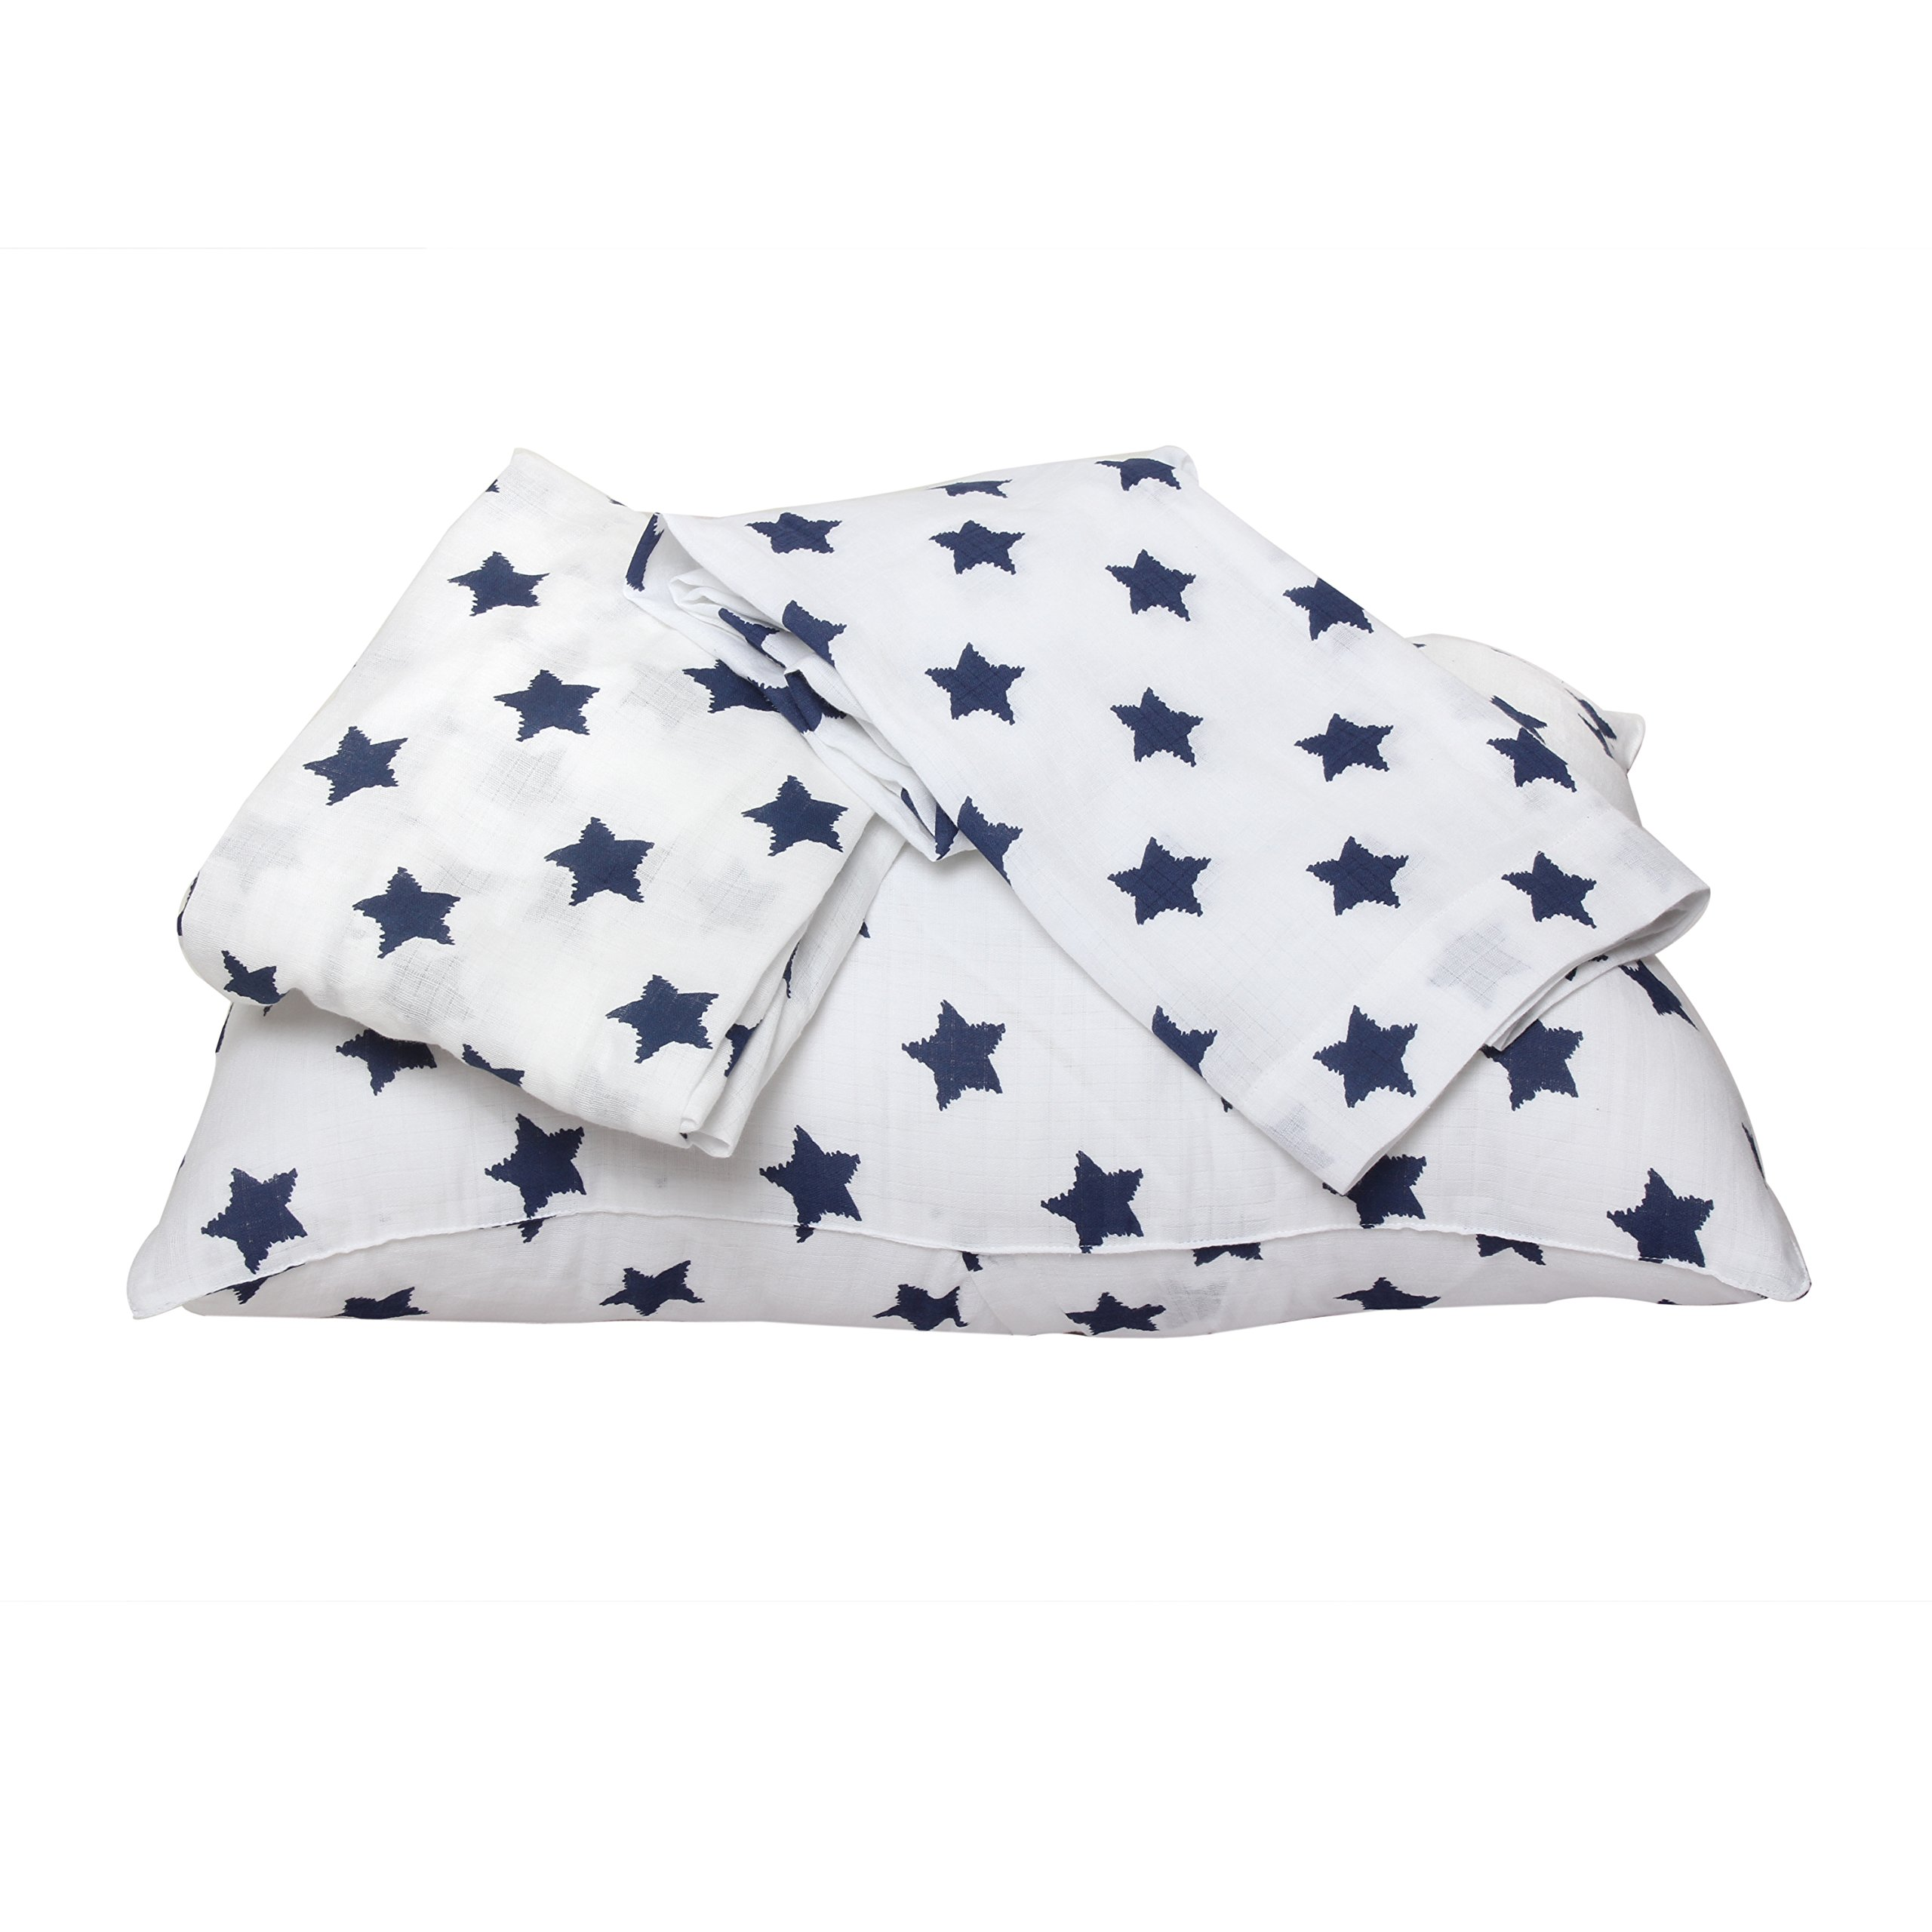 Bacati Stars Muslin 3 Piece Toddler Bedding Sheet Set, Navy by Bacati